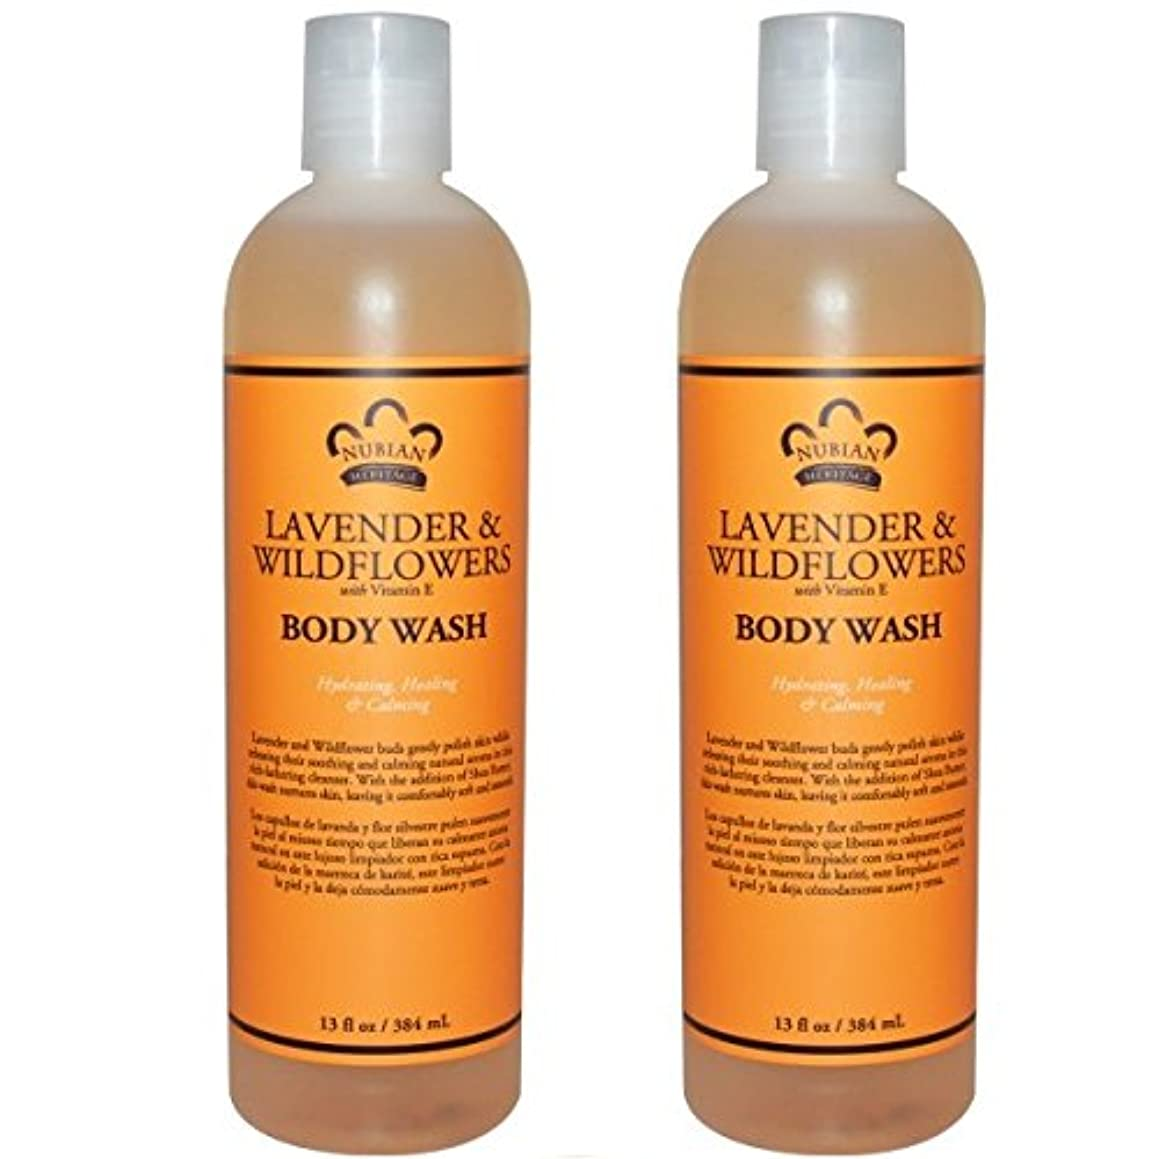 くつろぐ膨らみ巨人【海外直送品】【2本】Nubian Heritage Body Wash Relaxing & Nourishing, Lavender & Wildflowers - 13 fl oz (384 ml)